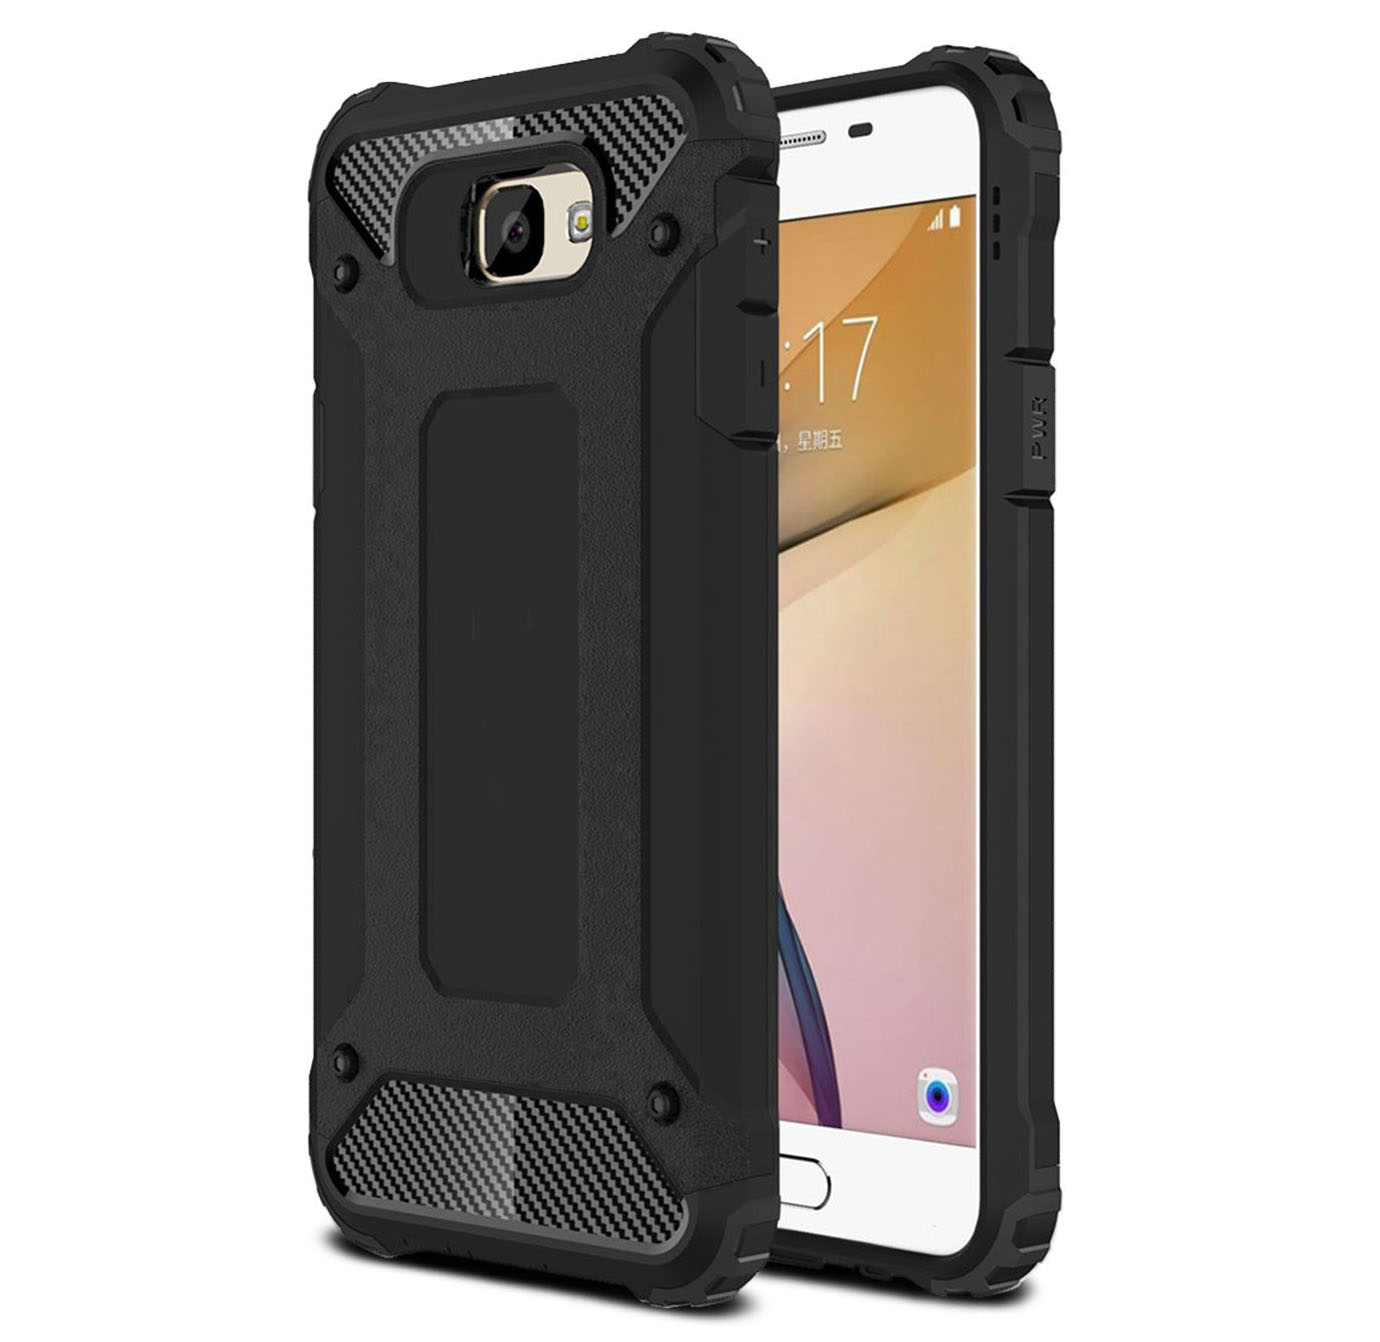 For NEW Samsung Galaxy A3 (2017) Case Rugged Armor Shockproof Protective Phone Cover